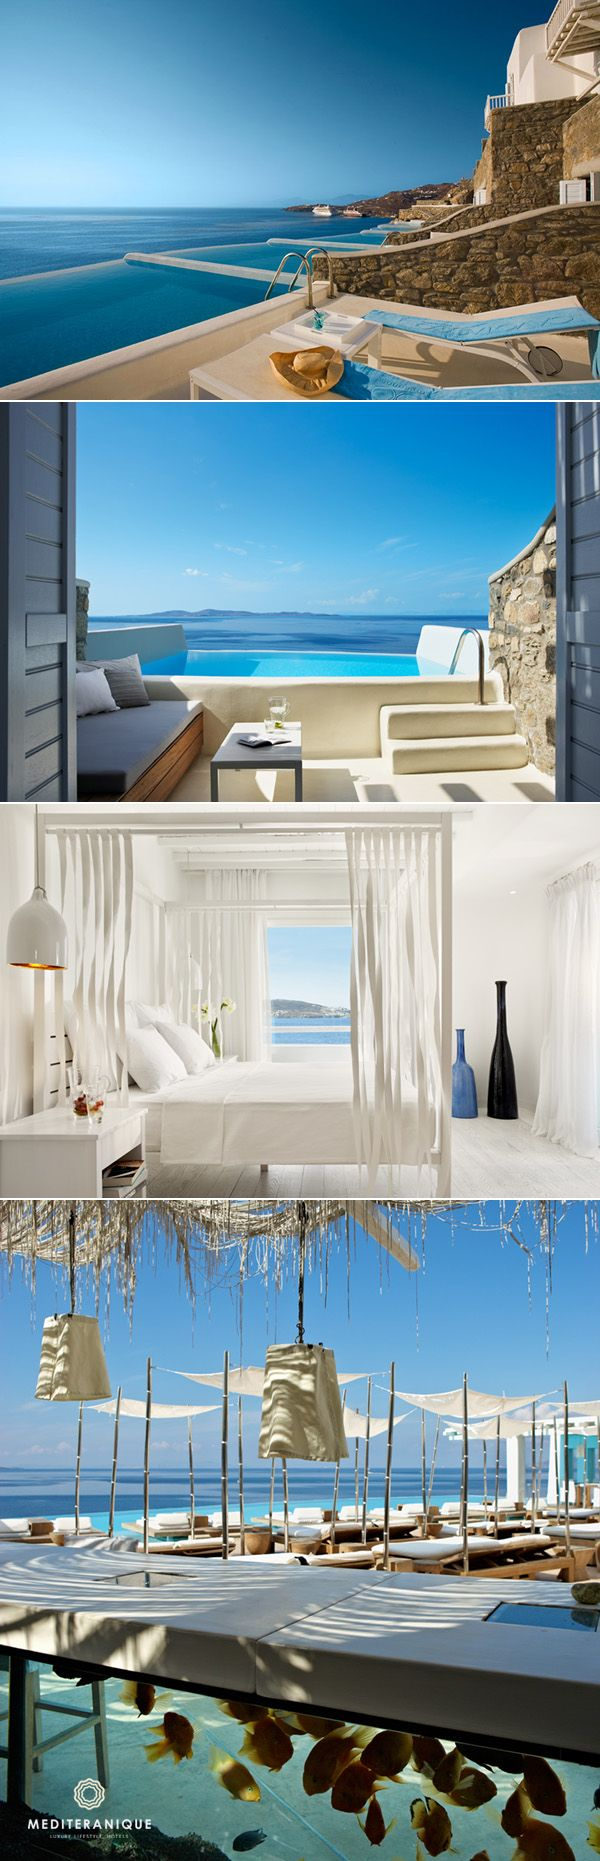 The contemporary Cavo Tagoo Hotel in Mykonos